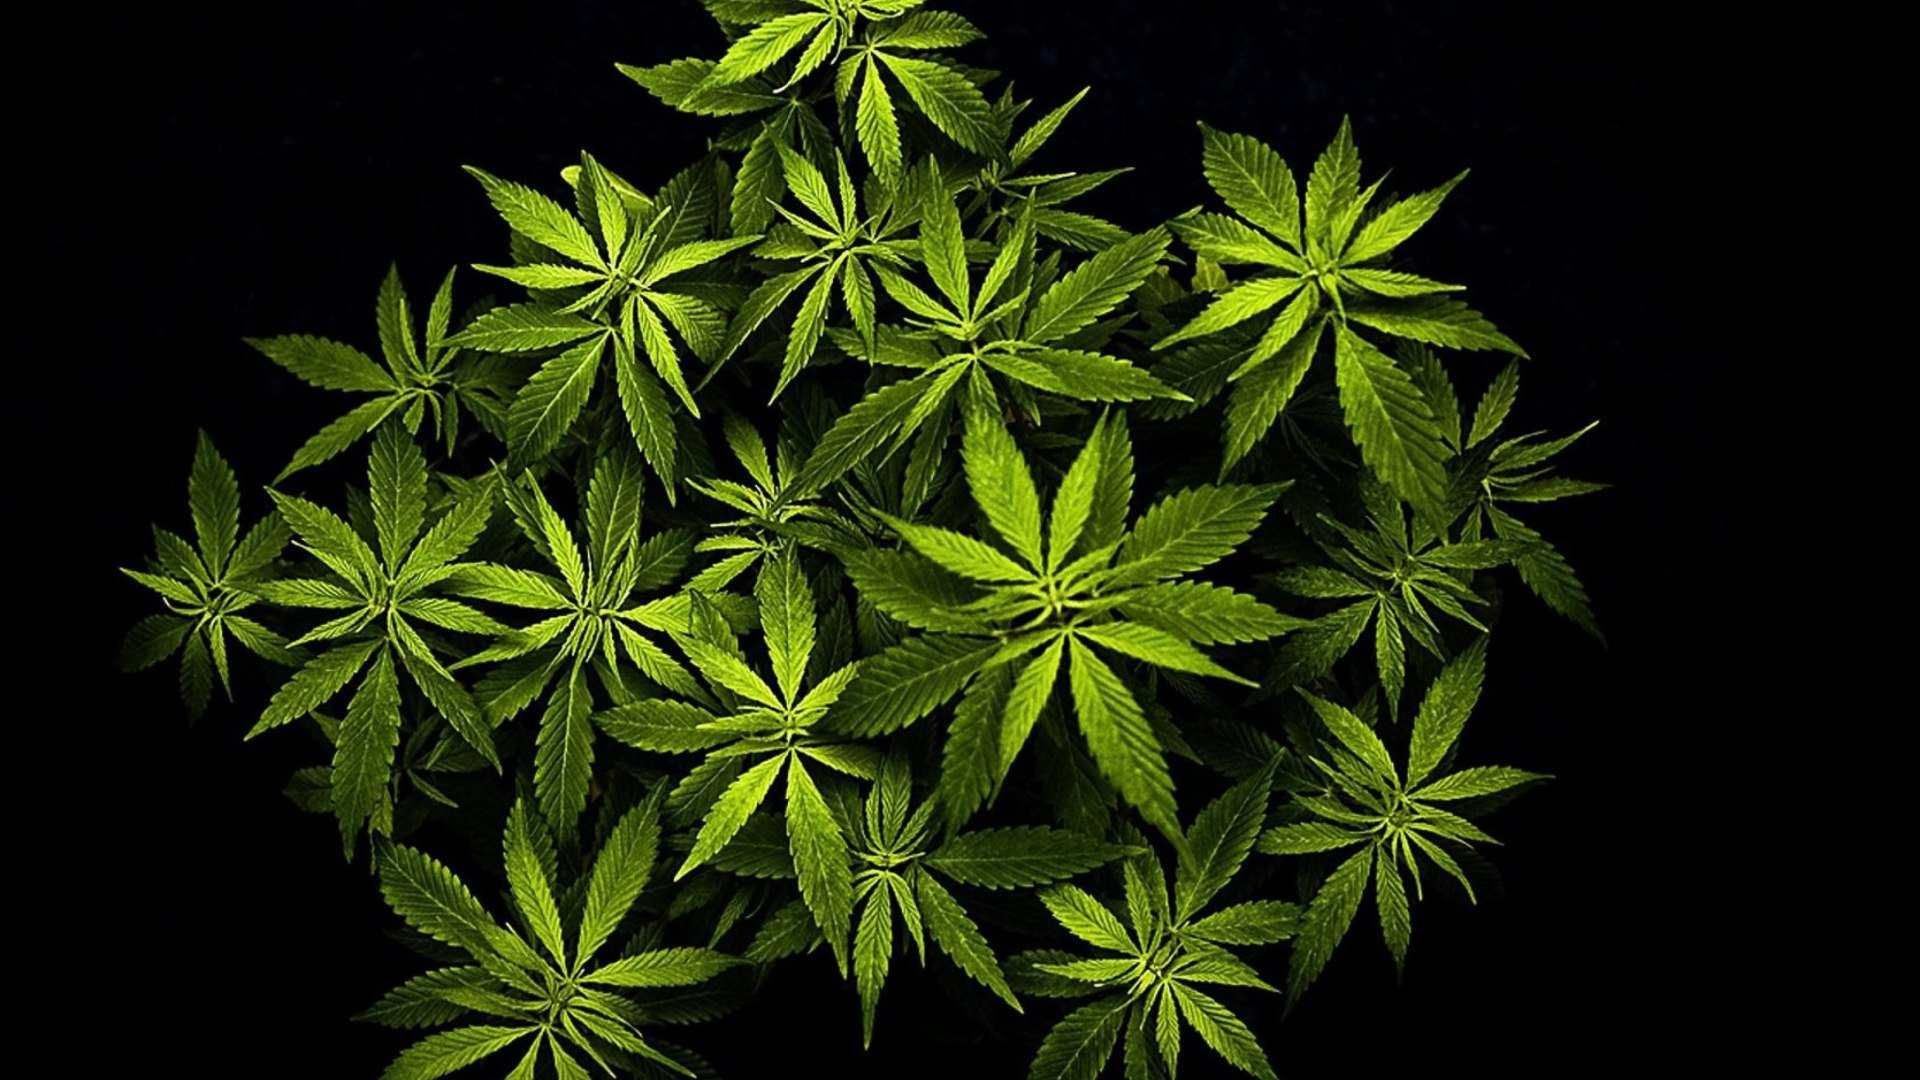 Cool Wallpapers For Phones 3d Cannabis Mary Jane Wallpaper For Desktop 1920x1080 Full Hd